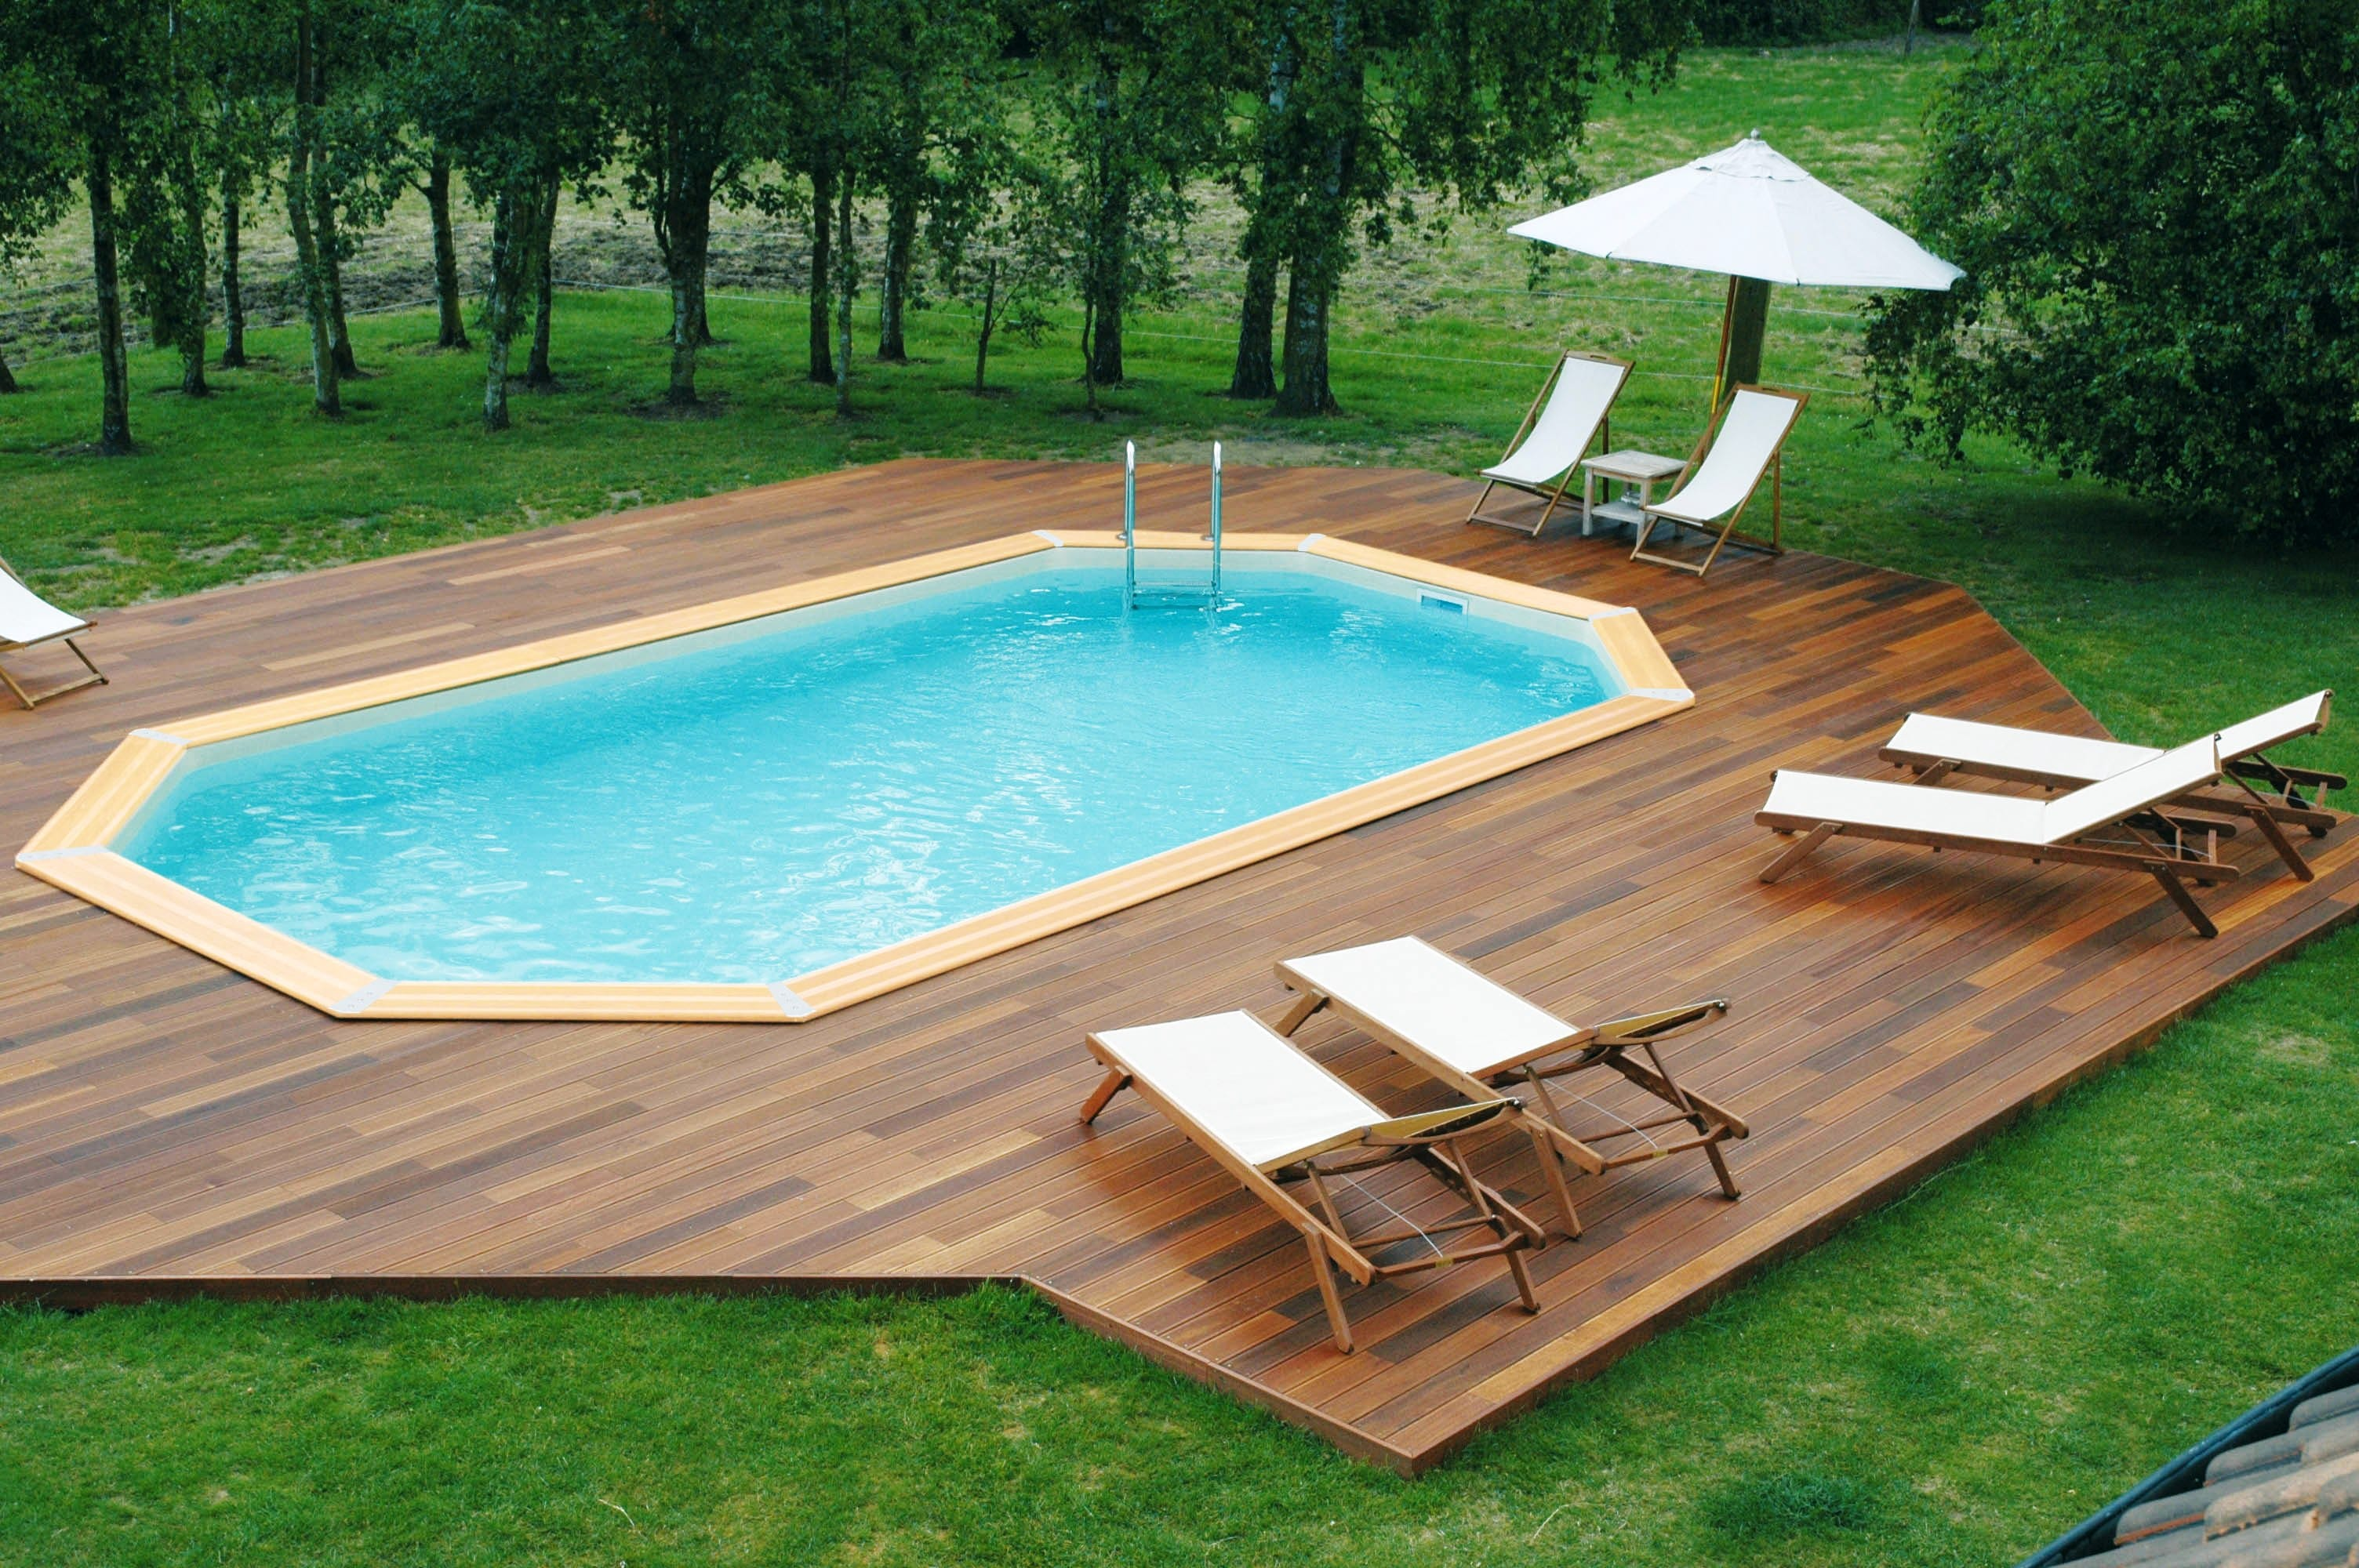 Piscine spa sauna bonnin for Bache piscine prix